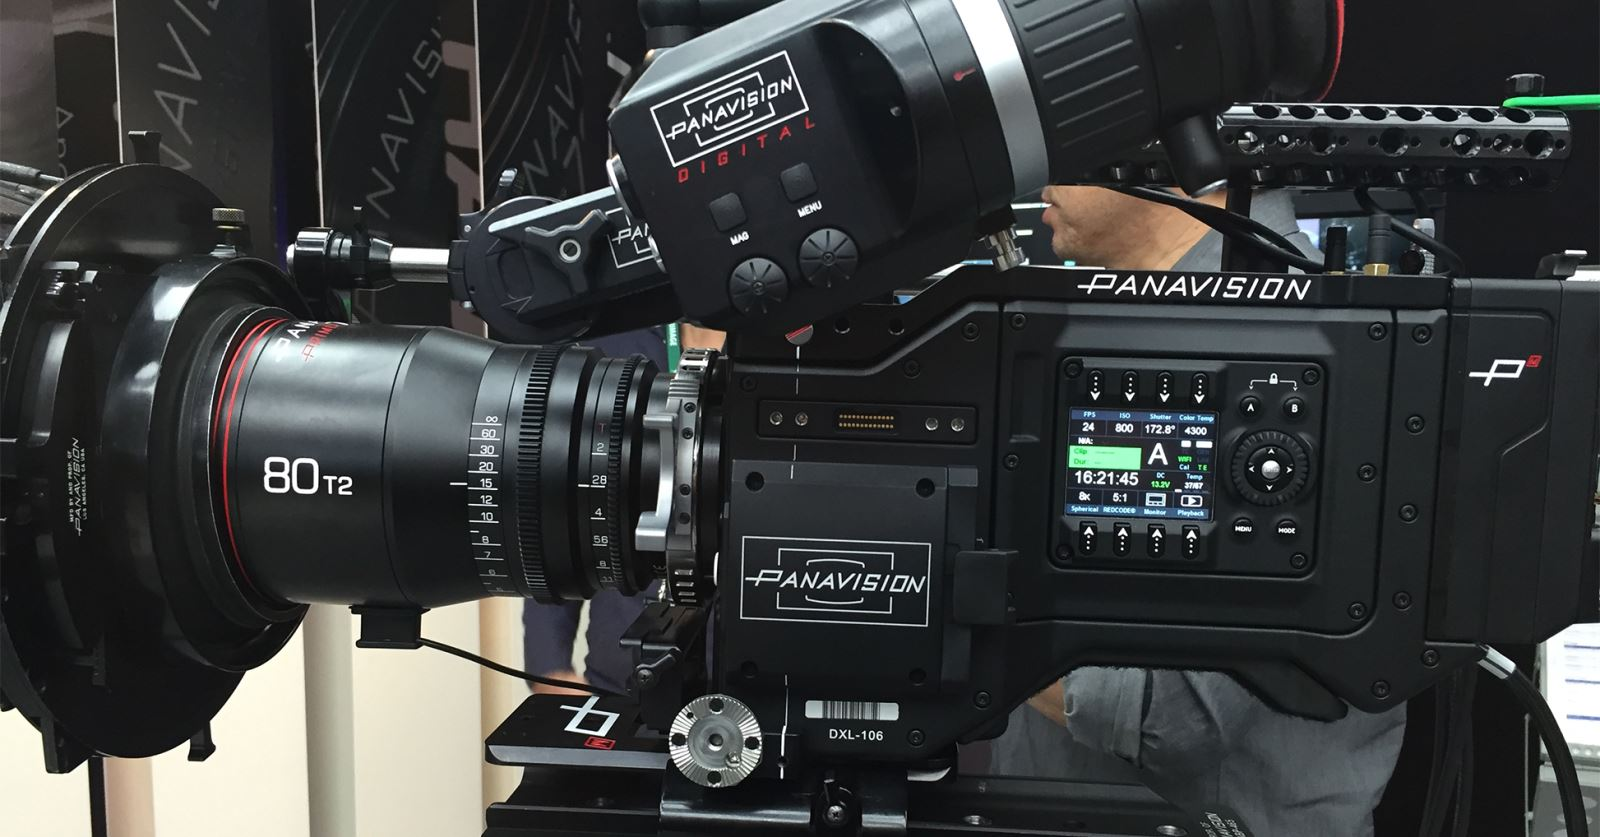 The new Millennium DXL camera from Panavision with RED body and sensor and colour science from Light Iron